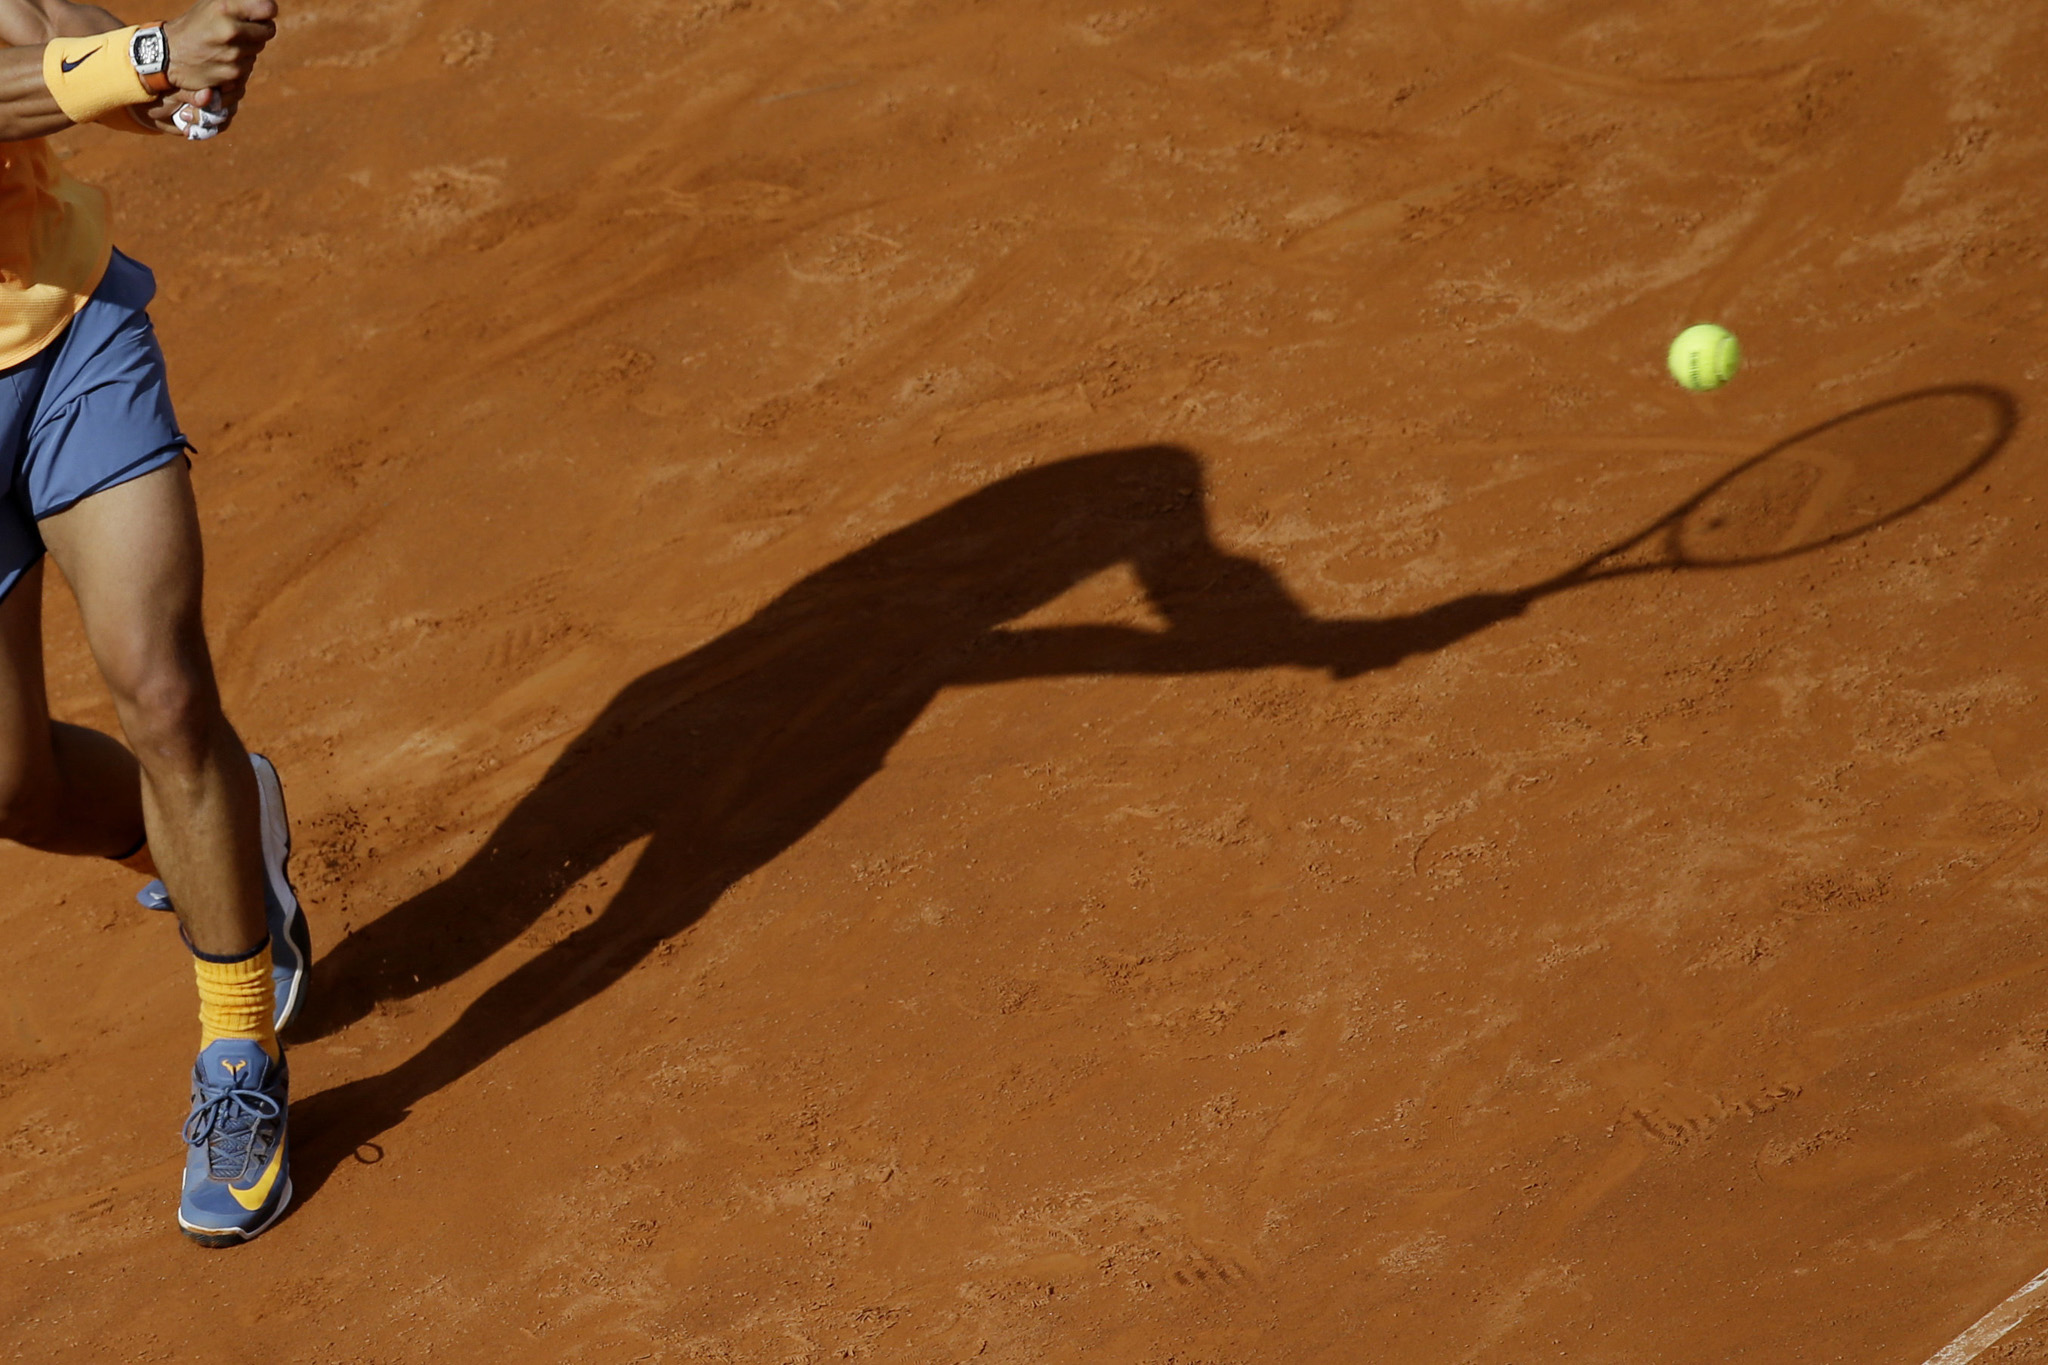 Rafael Nadal of Spain returns the ball to Nick Kyrgios of Australia during their match at the Italian Open tennis tournament, in Rome, Thursday, May 12, 2016. (AP Photo/Andrew Medichini)